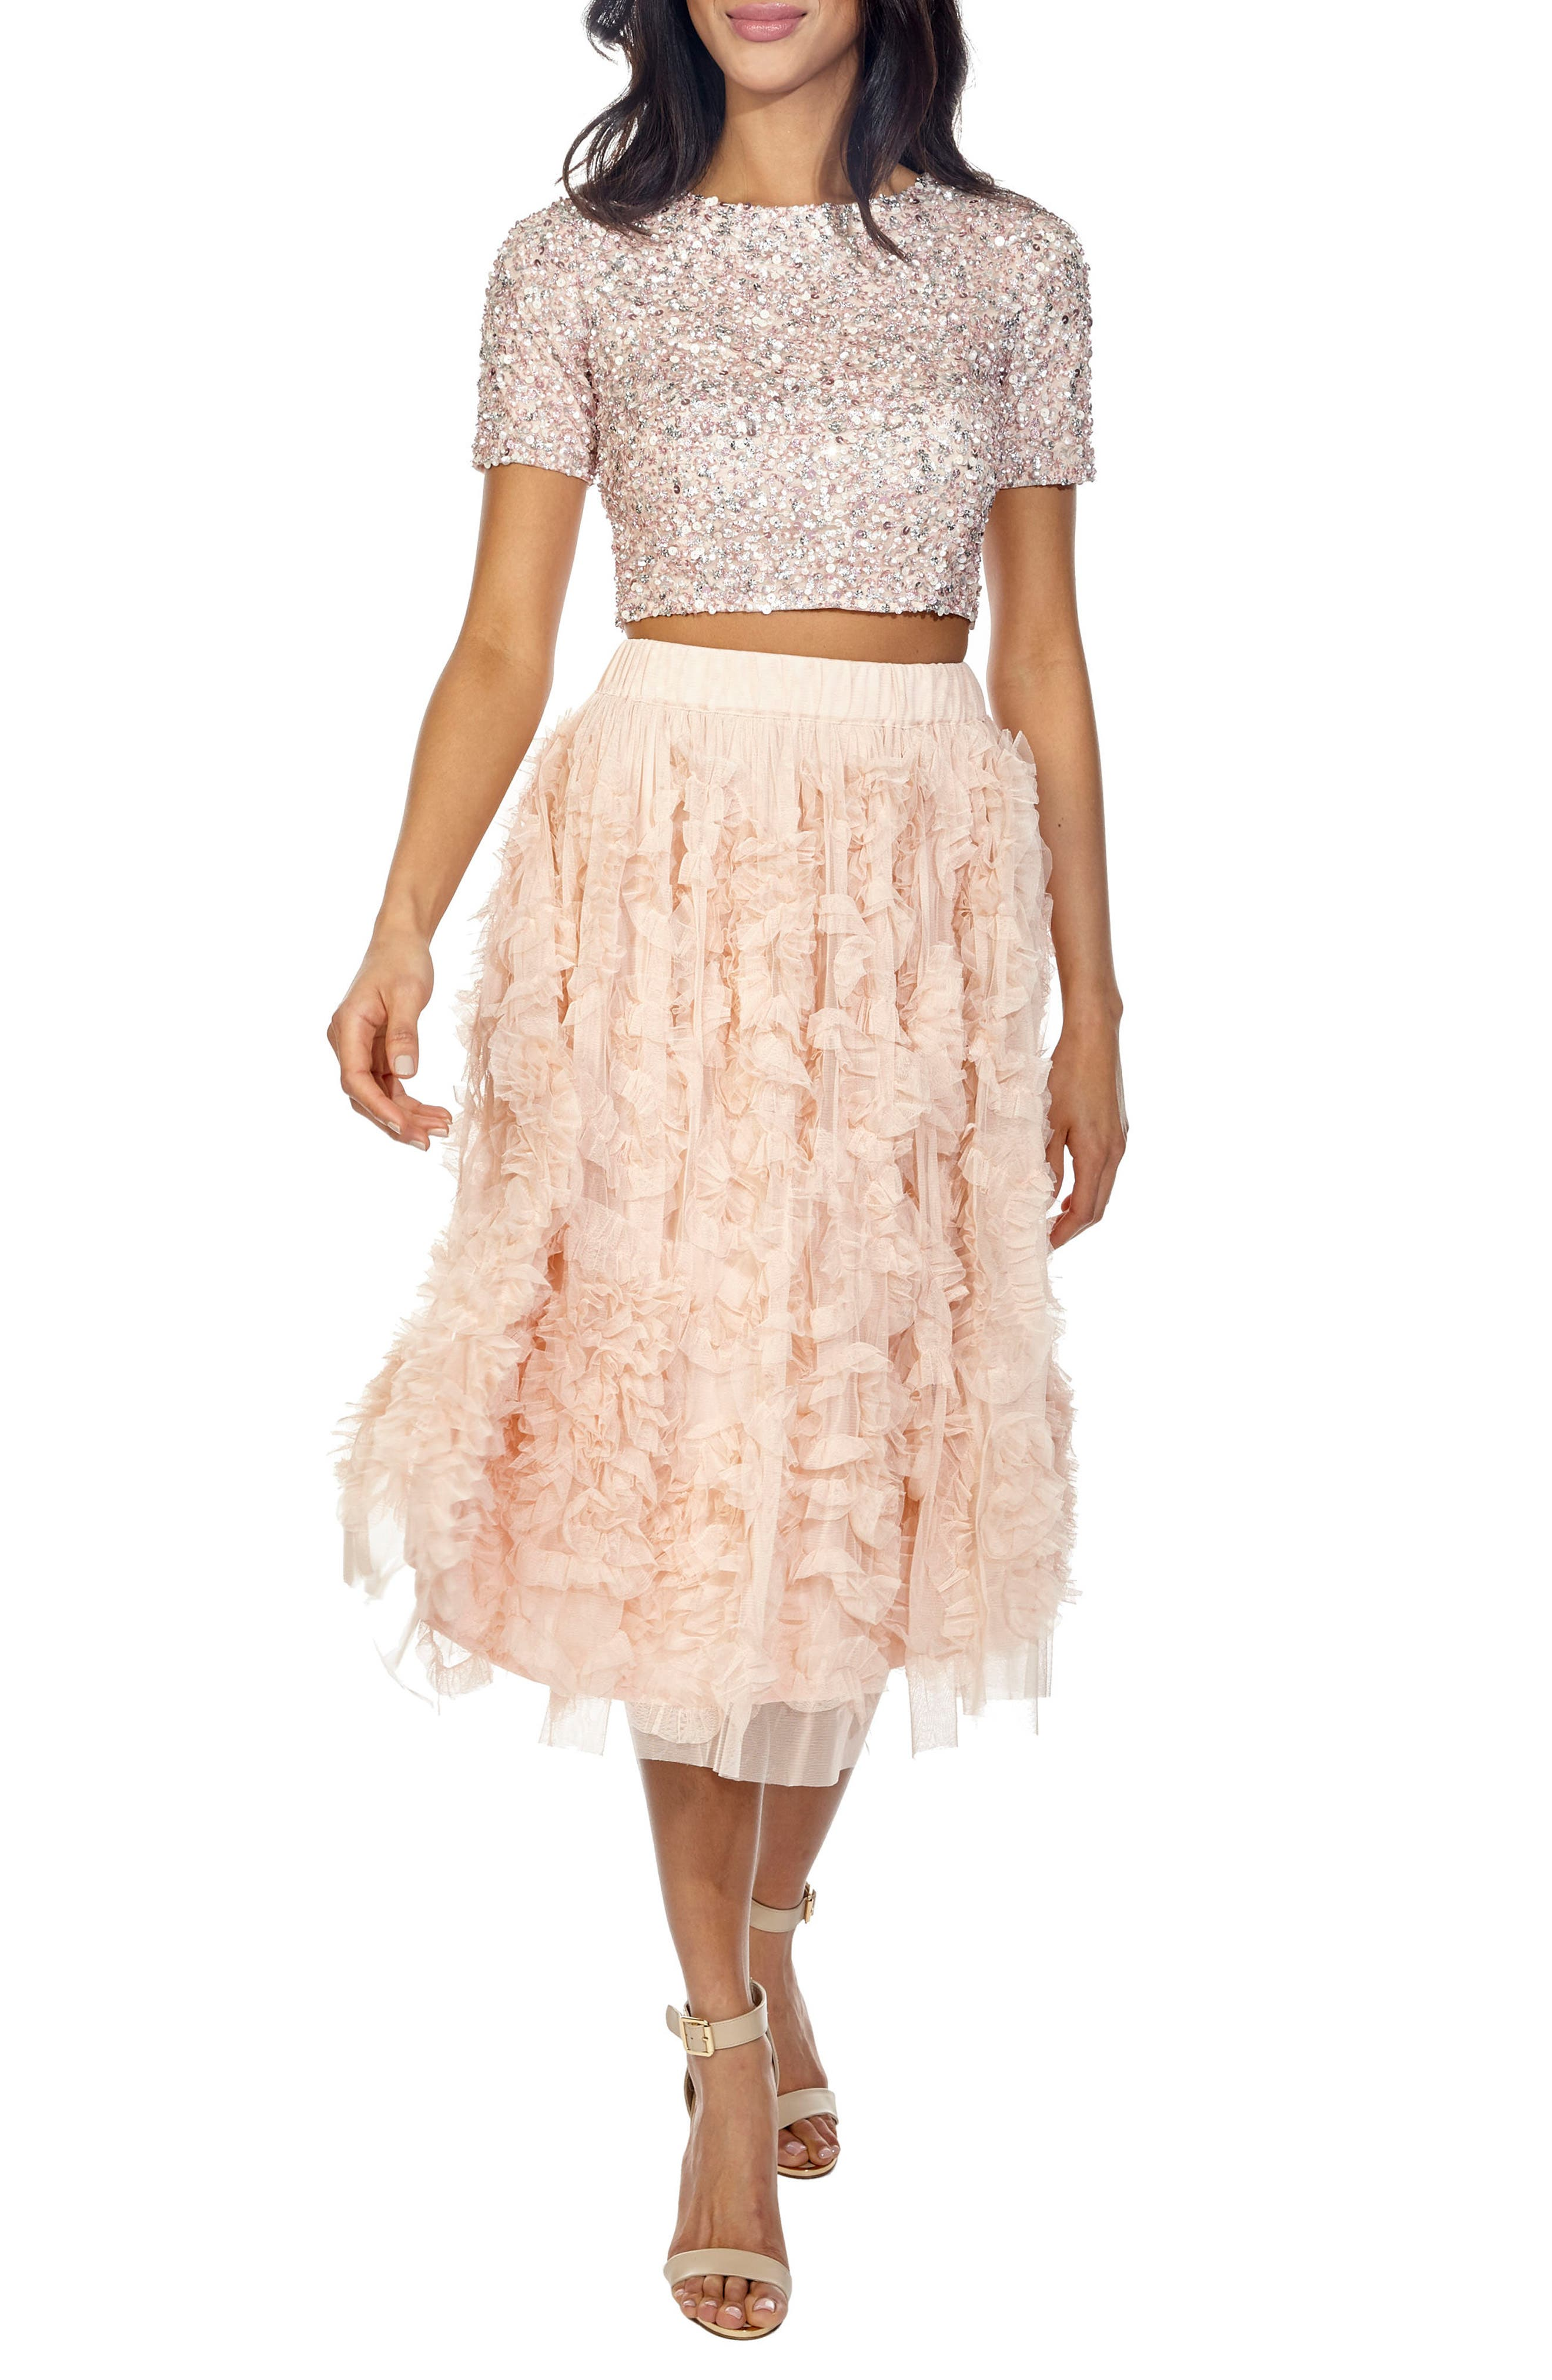 Lace & Beads Picasso Sequin Top & Tulle Skirt Combo